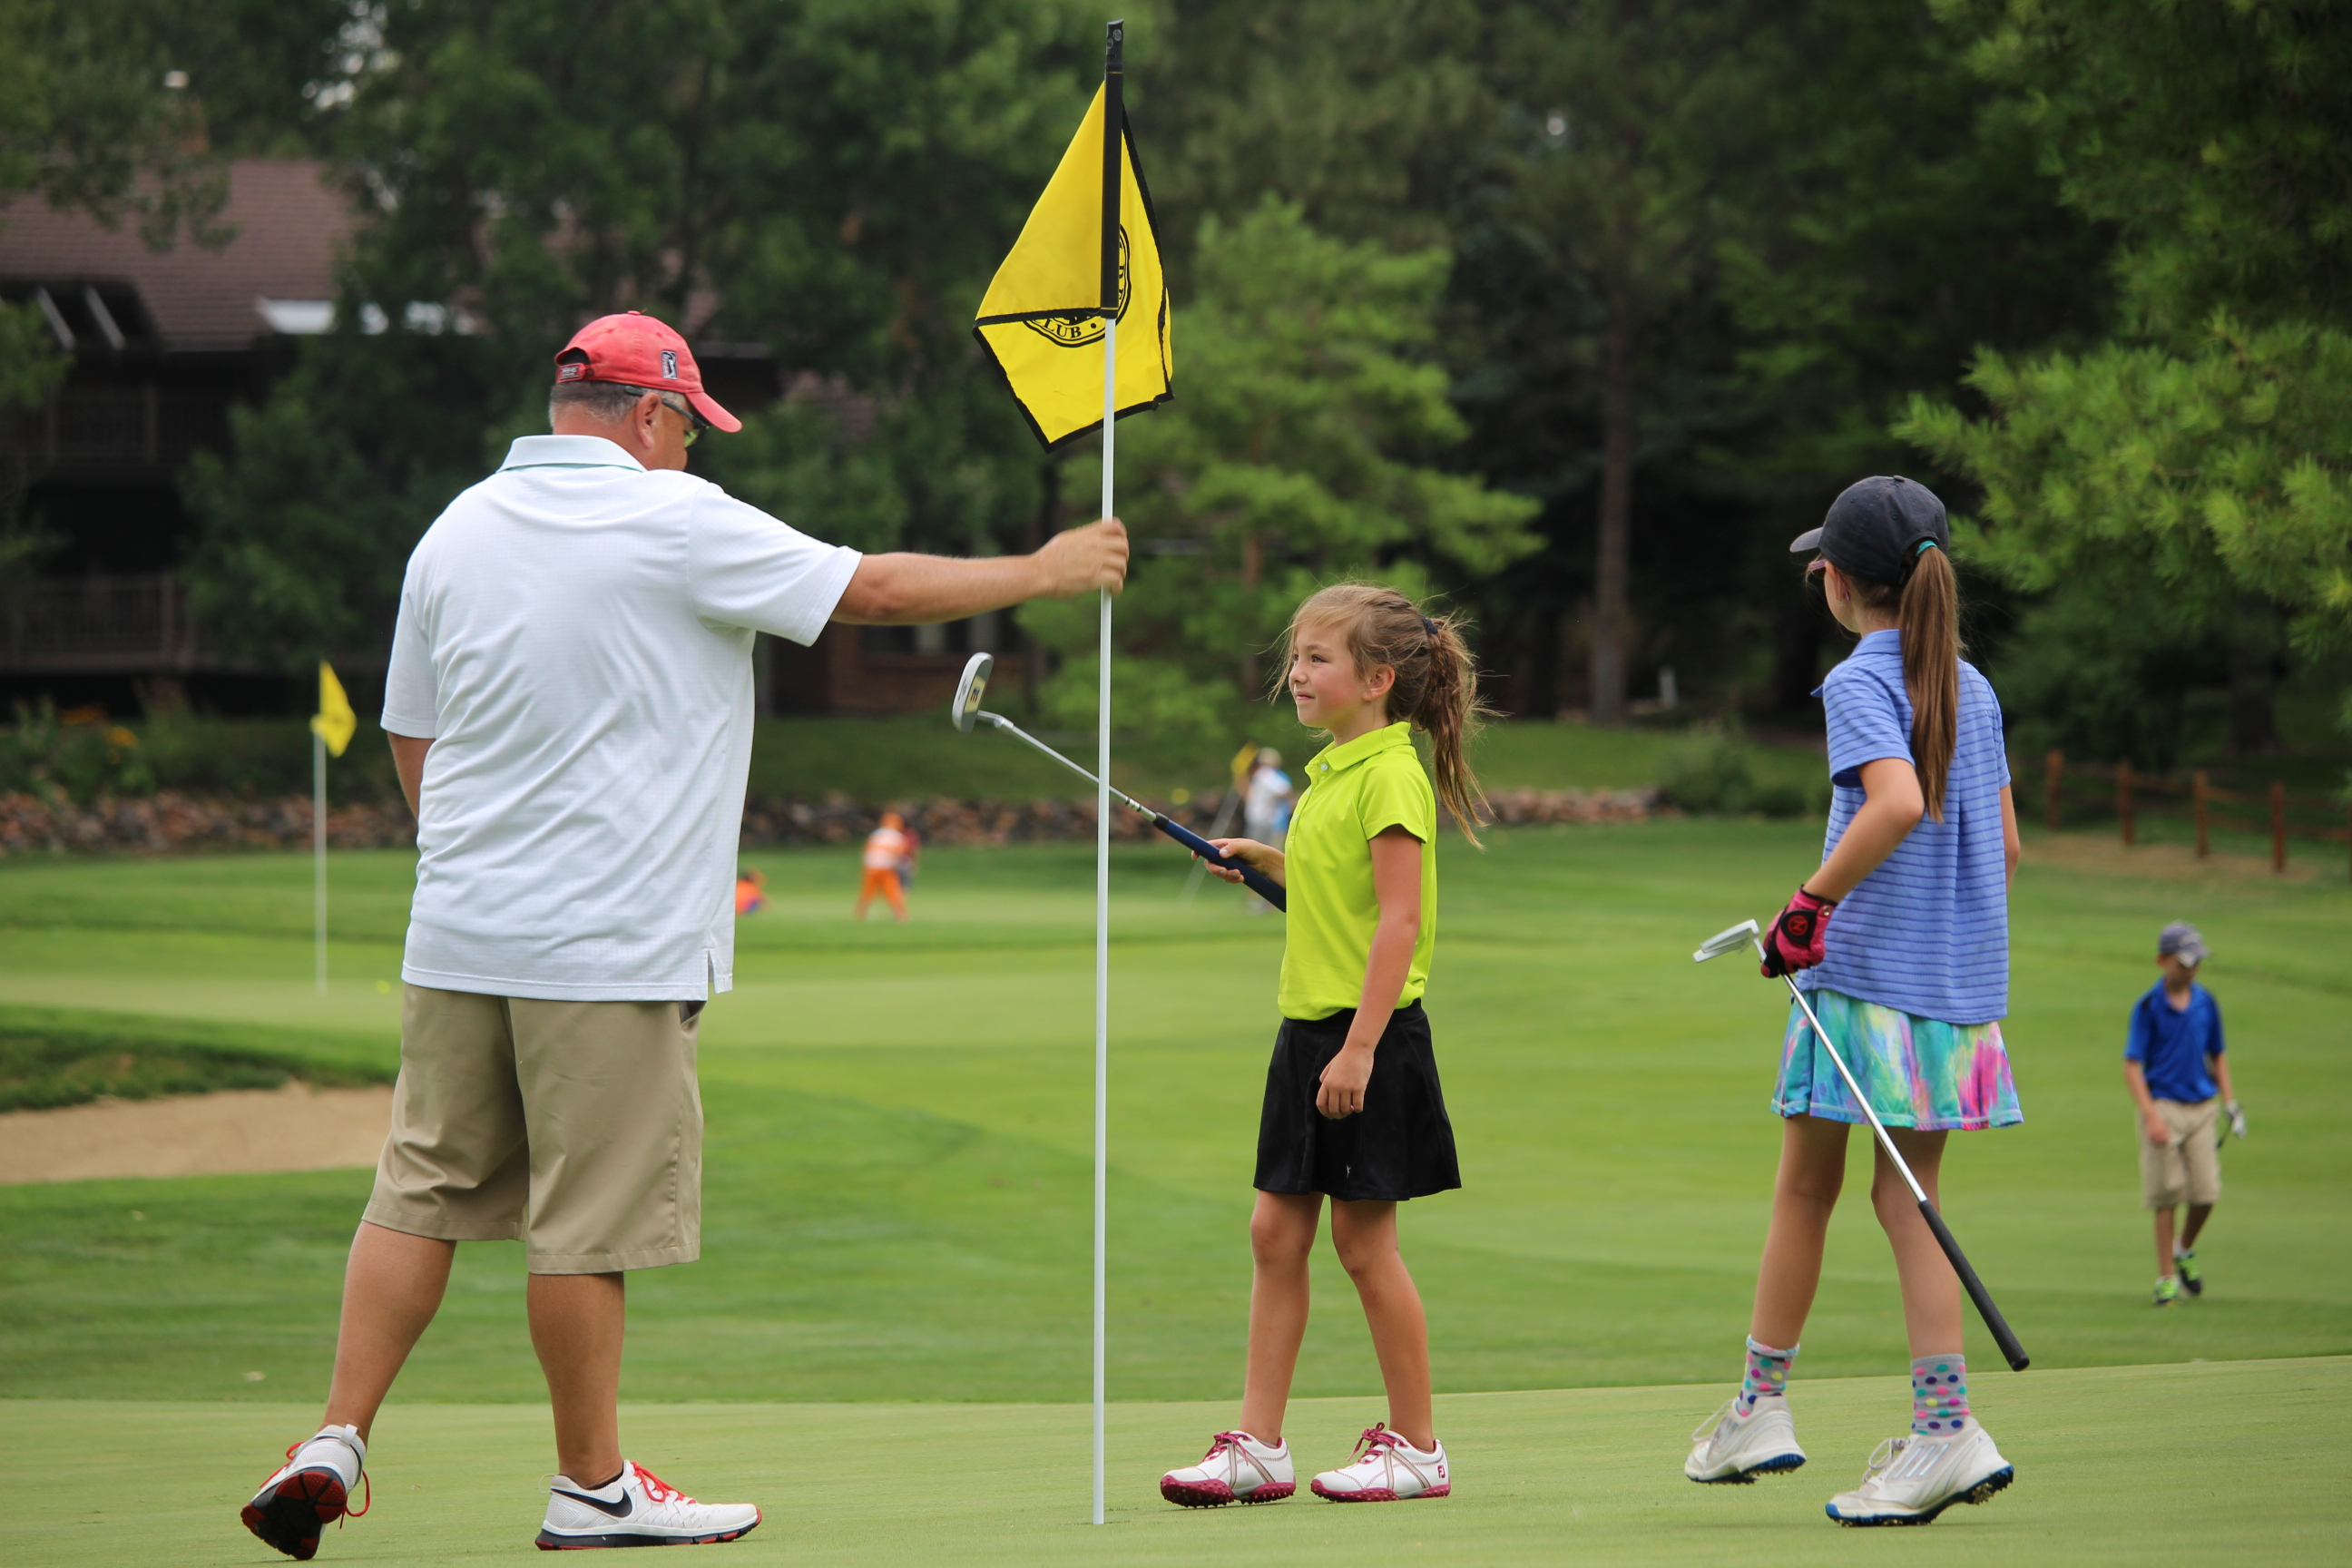 Junior Series Championship - 10 & Under